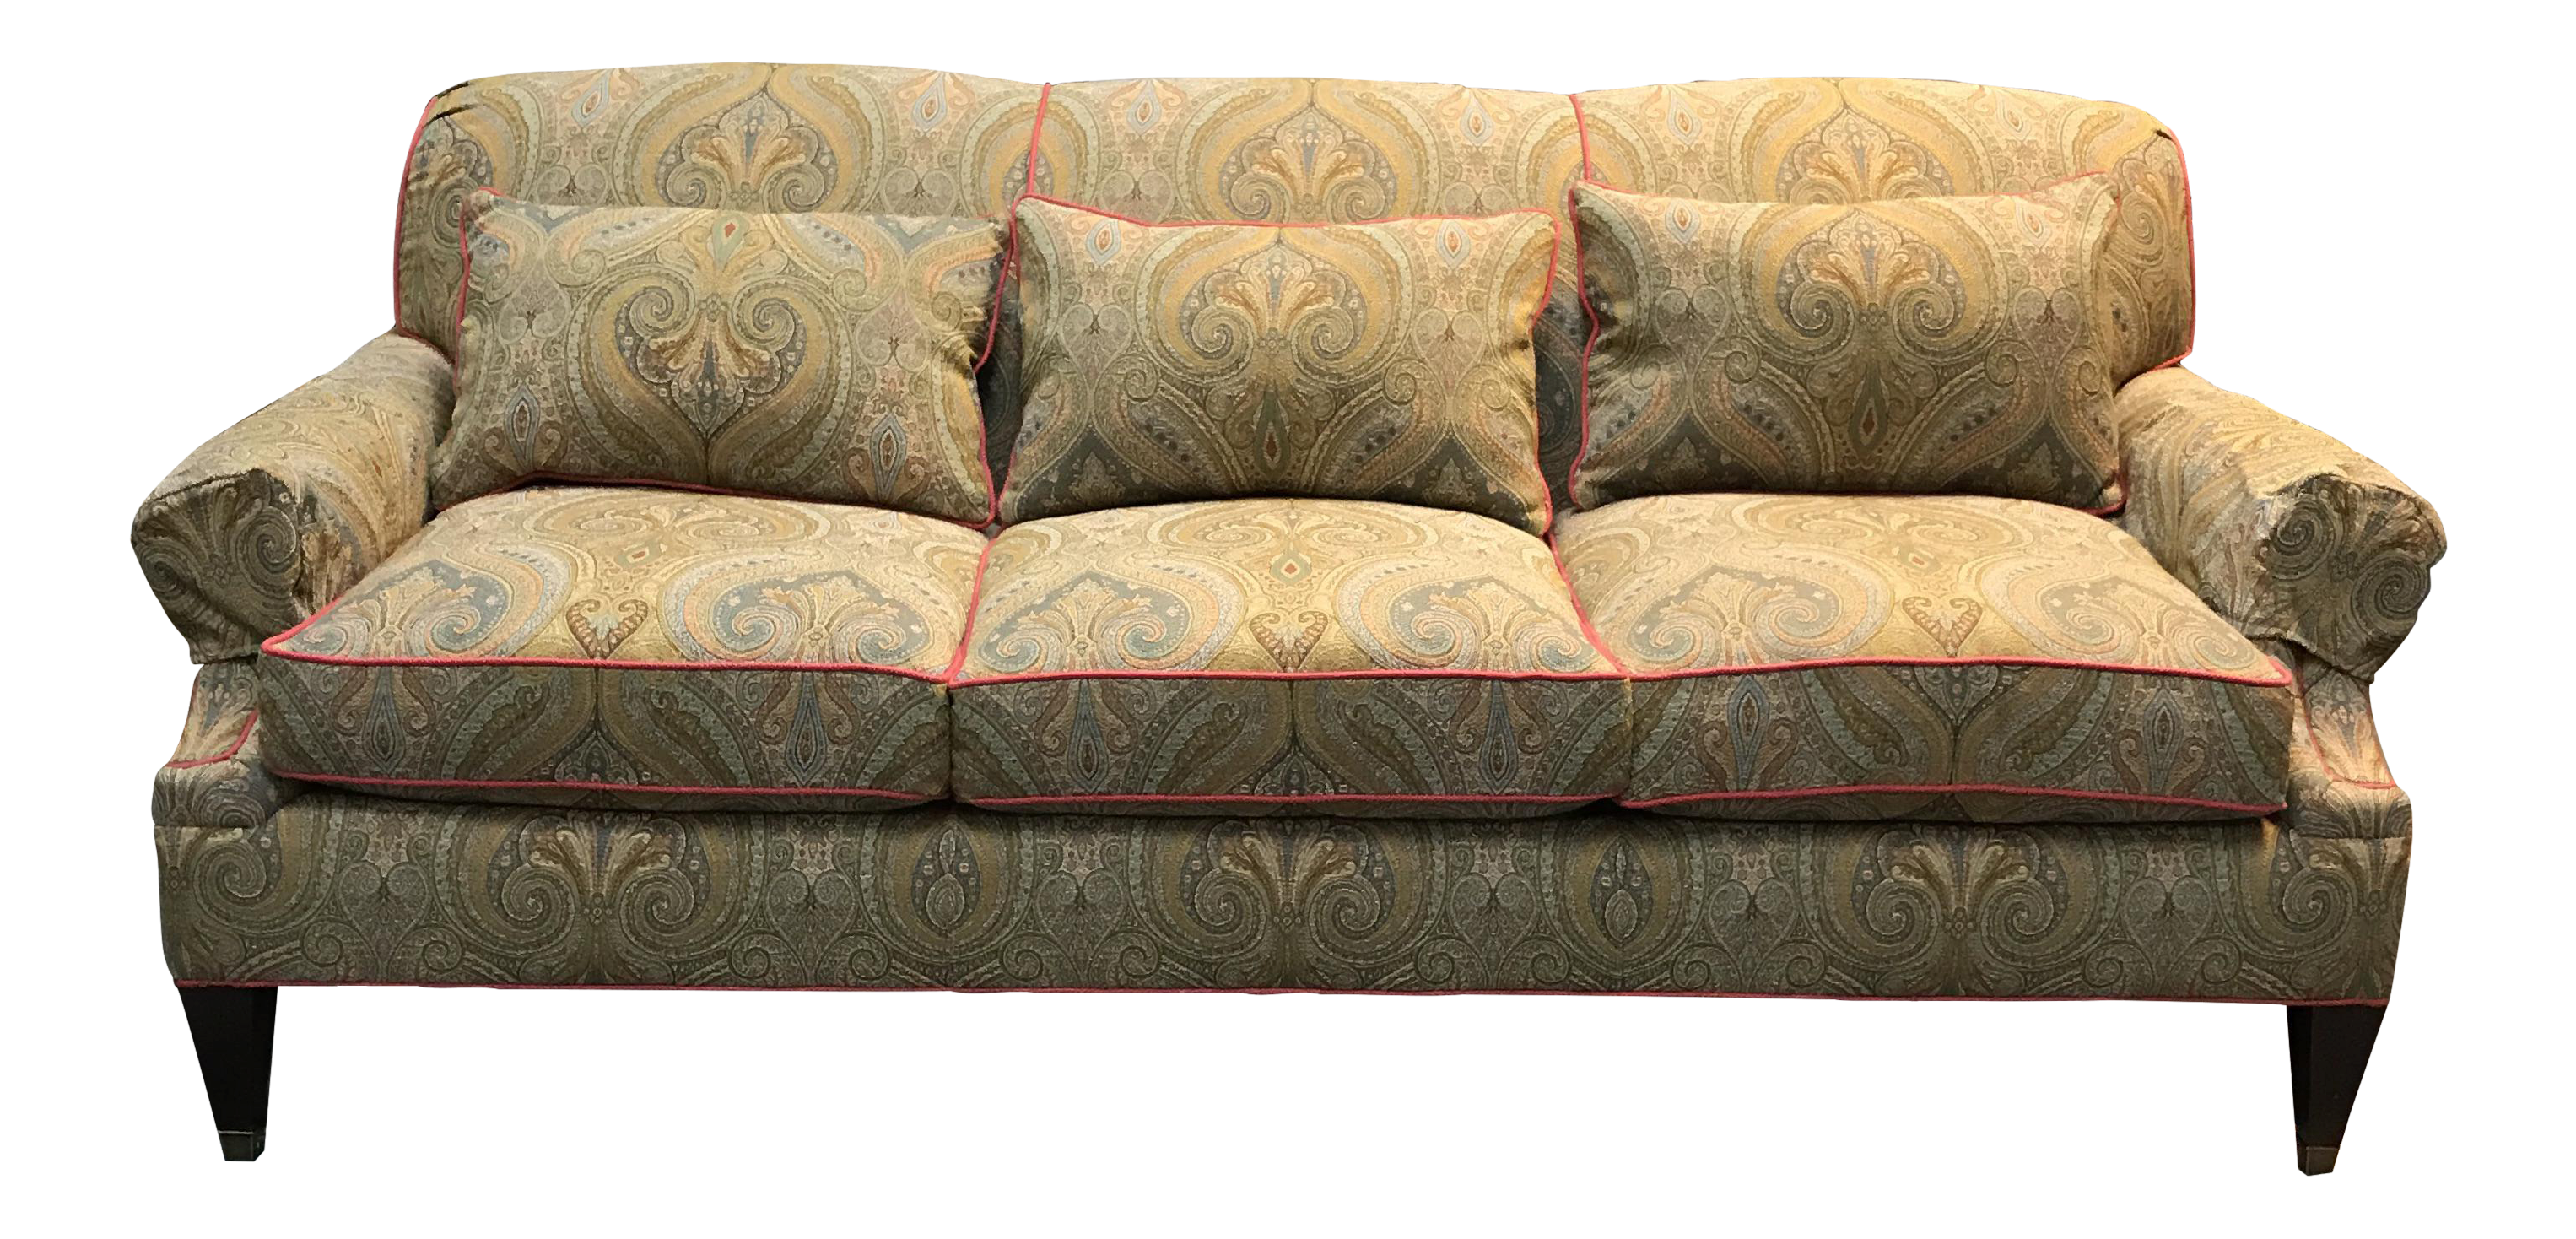 Drexel Heritage sofa Fancy Drexel Heritage Paisley Couch Pattern